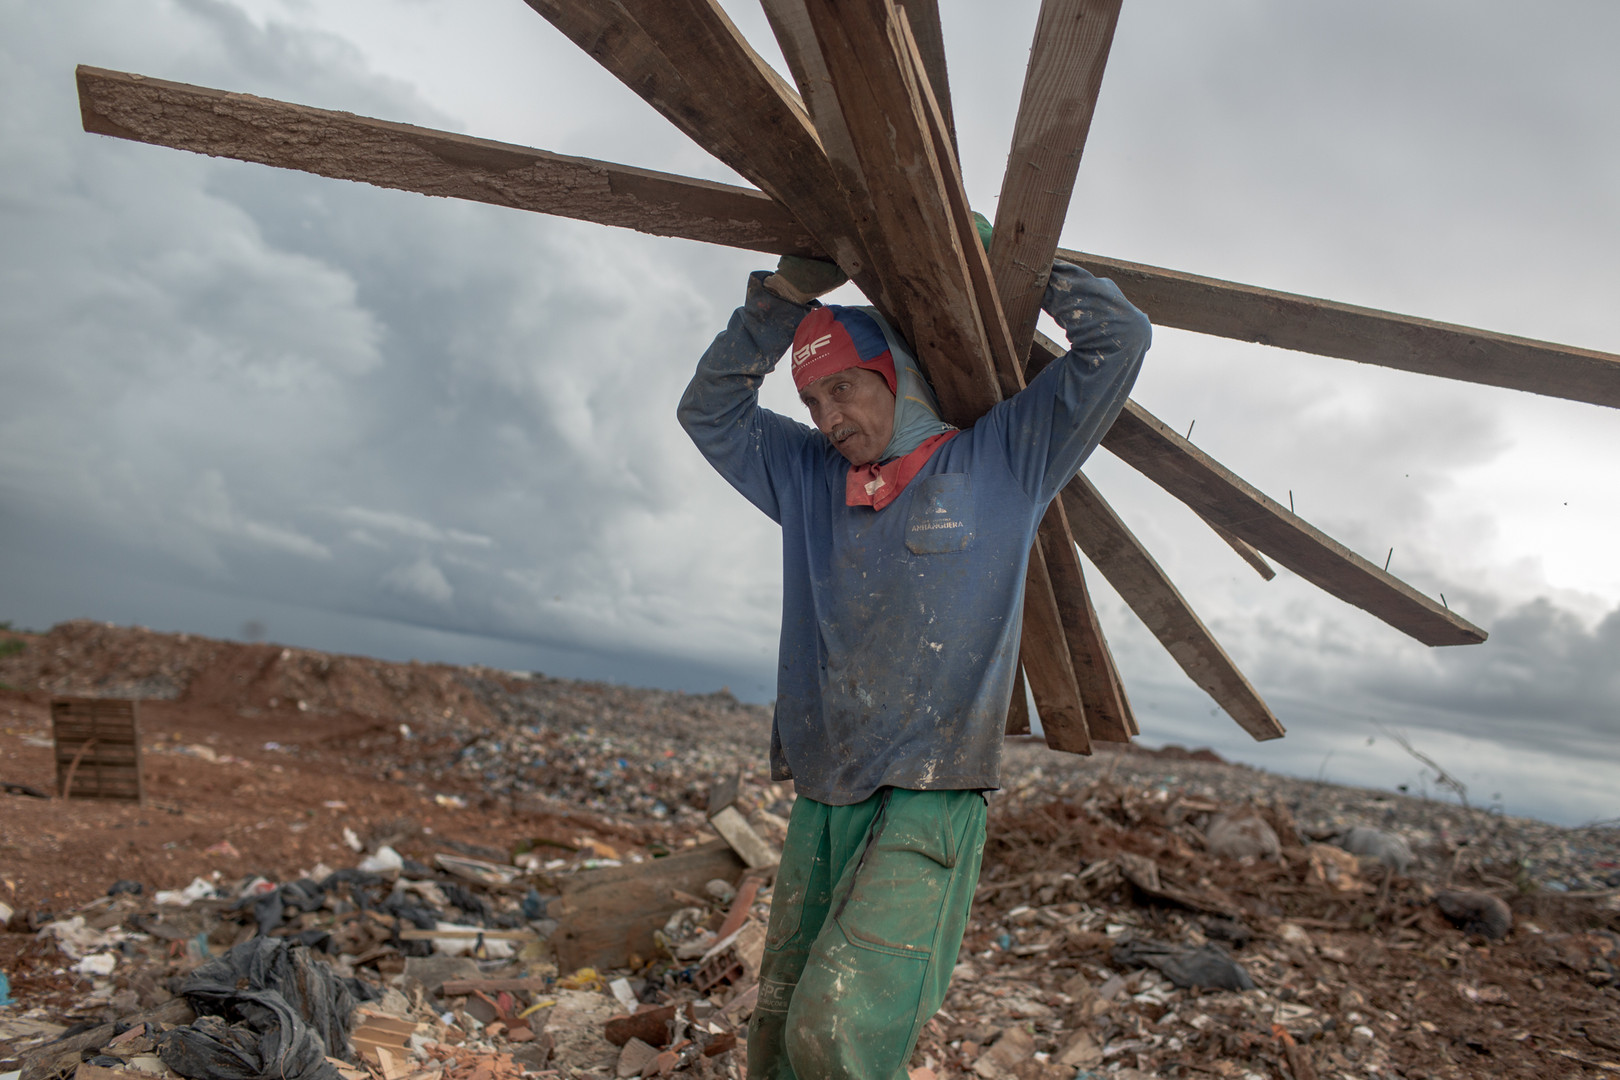 A recycler brings wood to his pile of trash picked at the Estrutural dump in Brasilia, on Monday, Jan. 15, 2018. The trash pickers look for paper, copper, plastic, beer cans and whatever else they can sell to middlemen, who then transport the items to a local recycling center. . Estrutural, the largest waste dump in Latin America is shutting down in Brasilia for sanitary reasons, upending the livelihood of thousands of garbage recyclers.